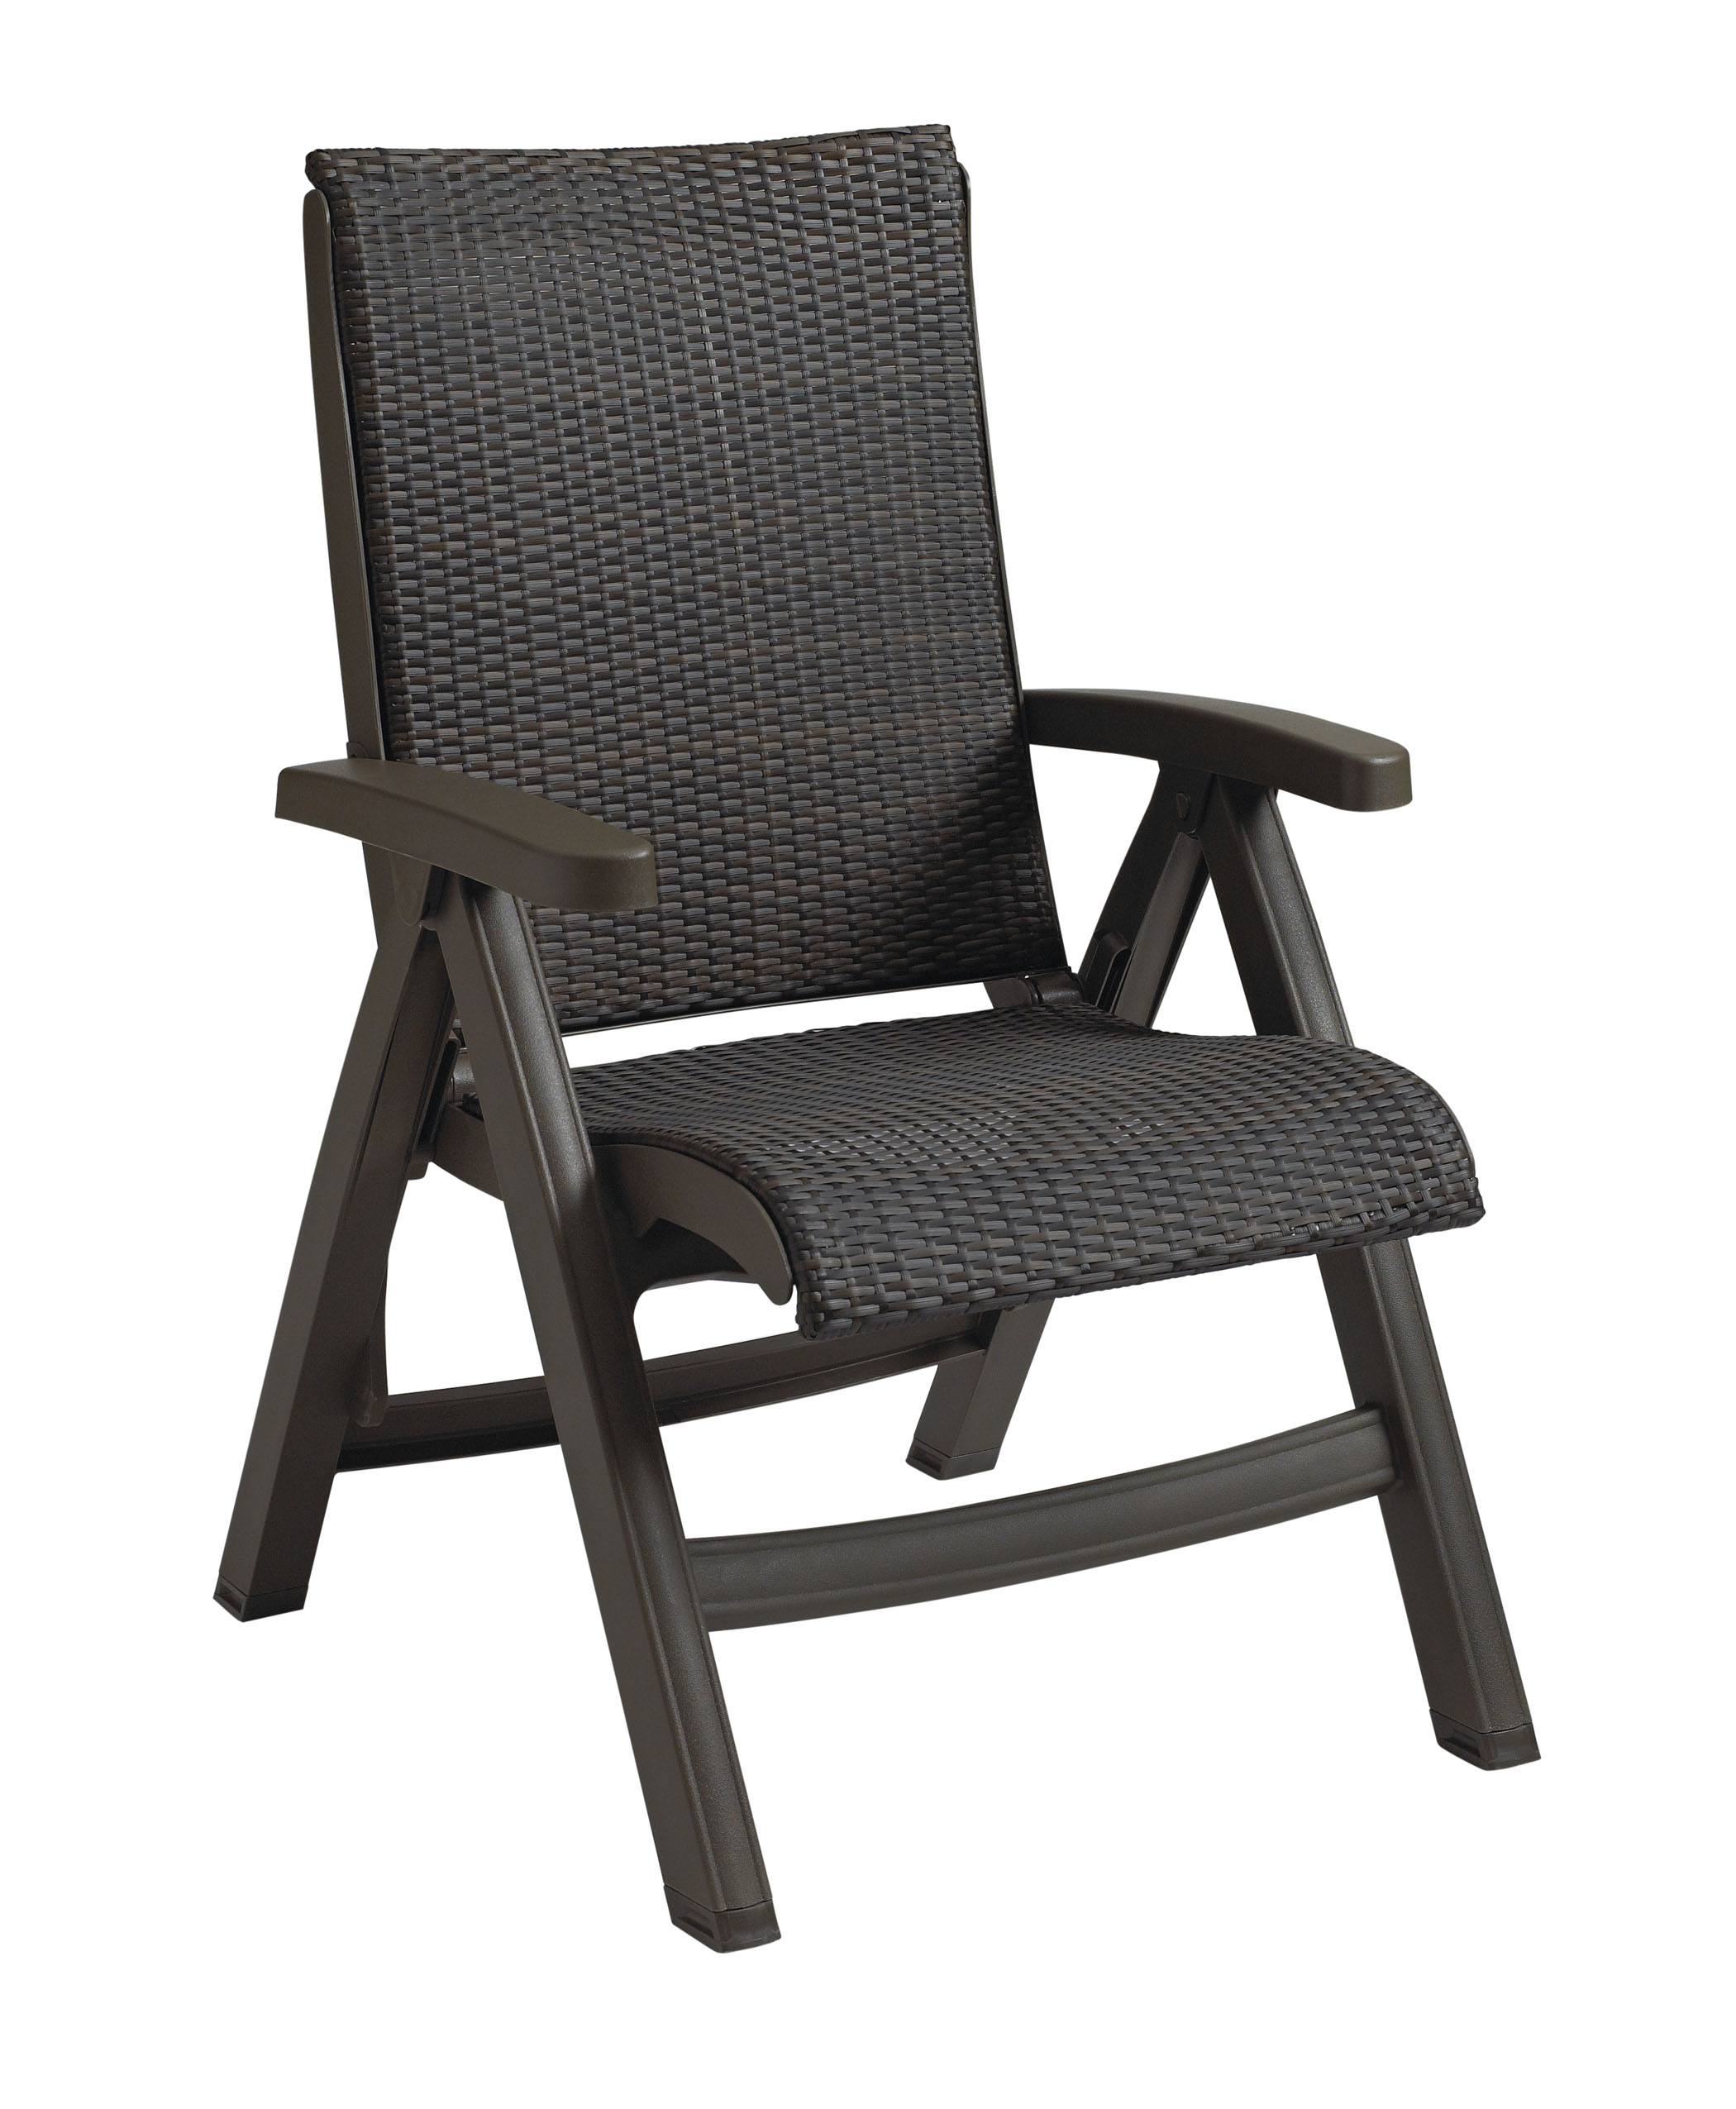 Patio Folding Chairs Java All Weather Wicker Resin Folding Chair Et Andt